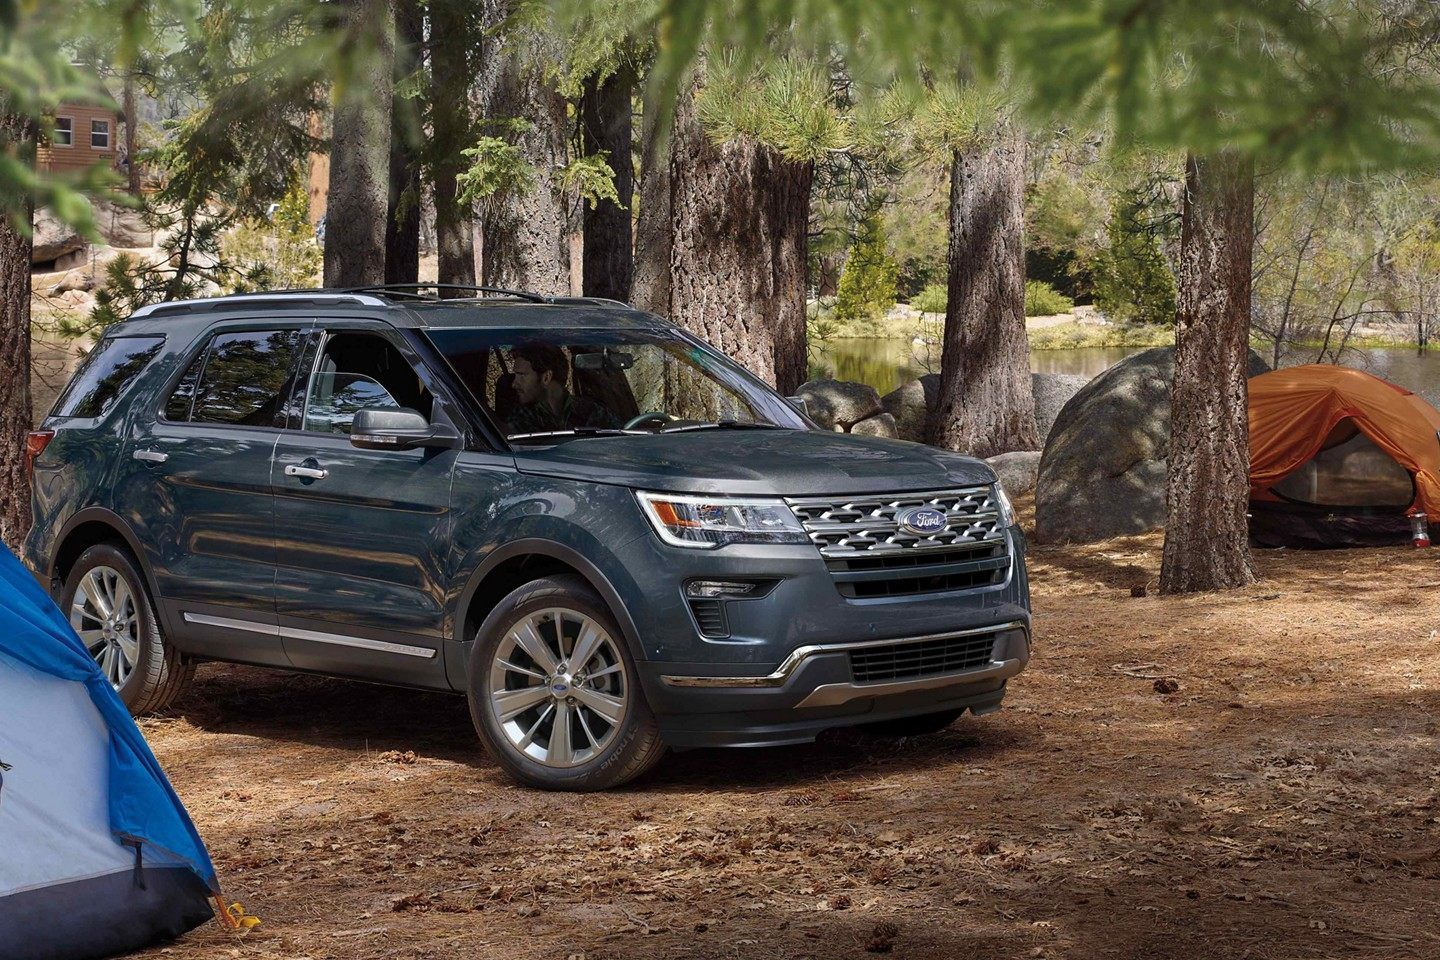 See Our Showcase Of Stunning Pictures Watch Riveting Videos And Explore 360 Views In Your Color Choices For The 20 Ford Explorer Ford Suv 2019 Ford Explorer